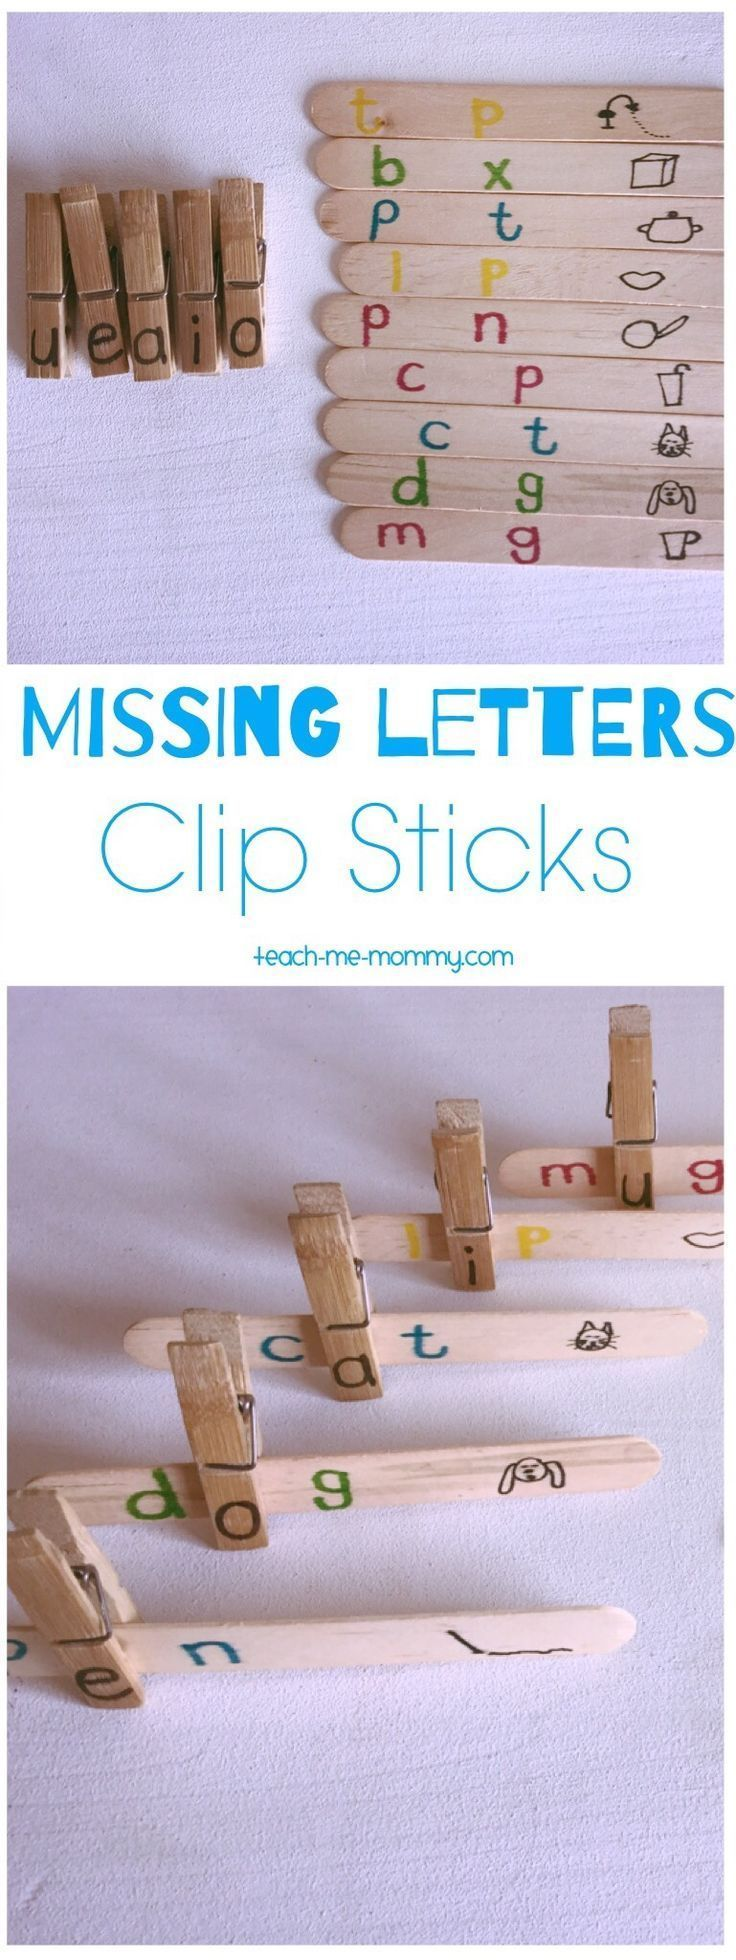 Awesome idea to work on spelling! Missing Letters Clip Sticks! Great hands-on activity for kindergarten!